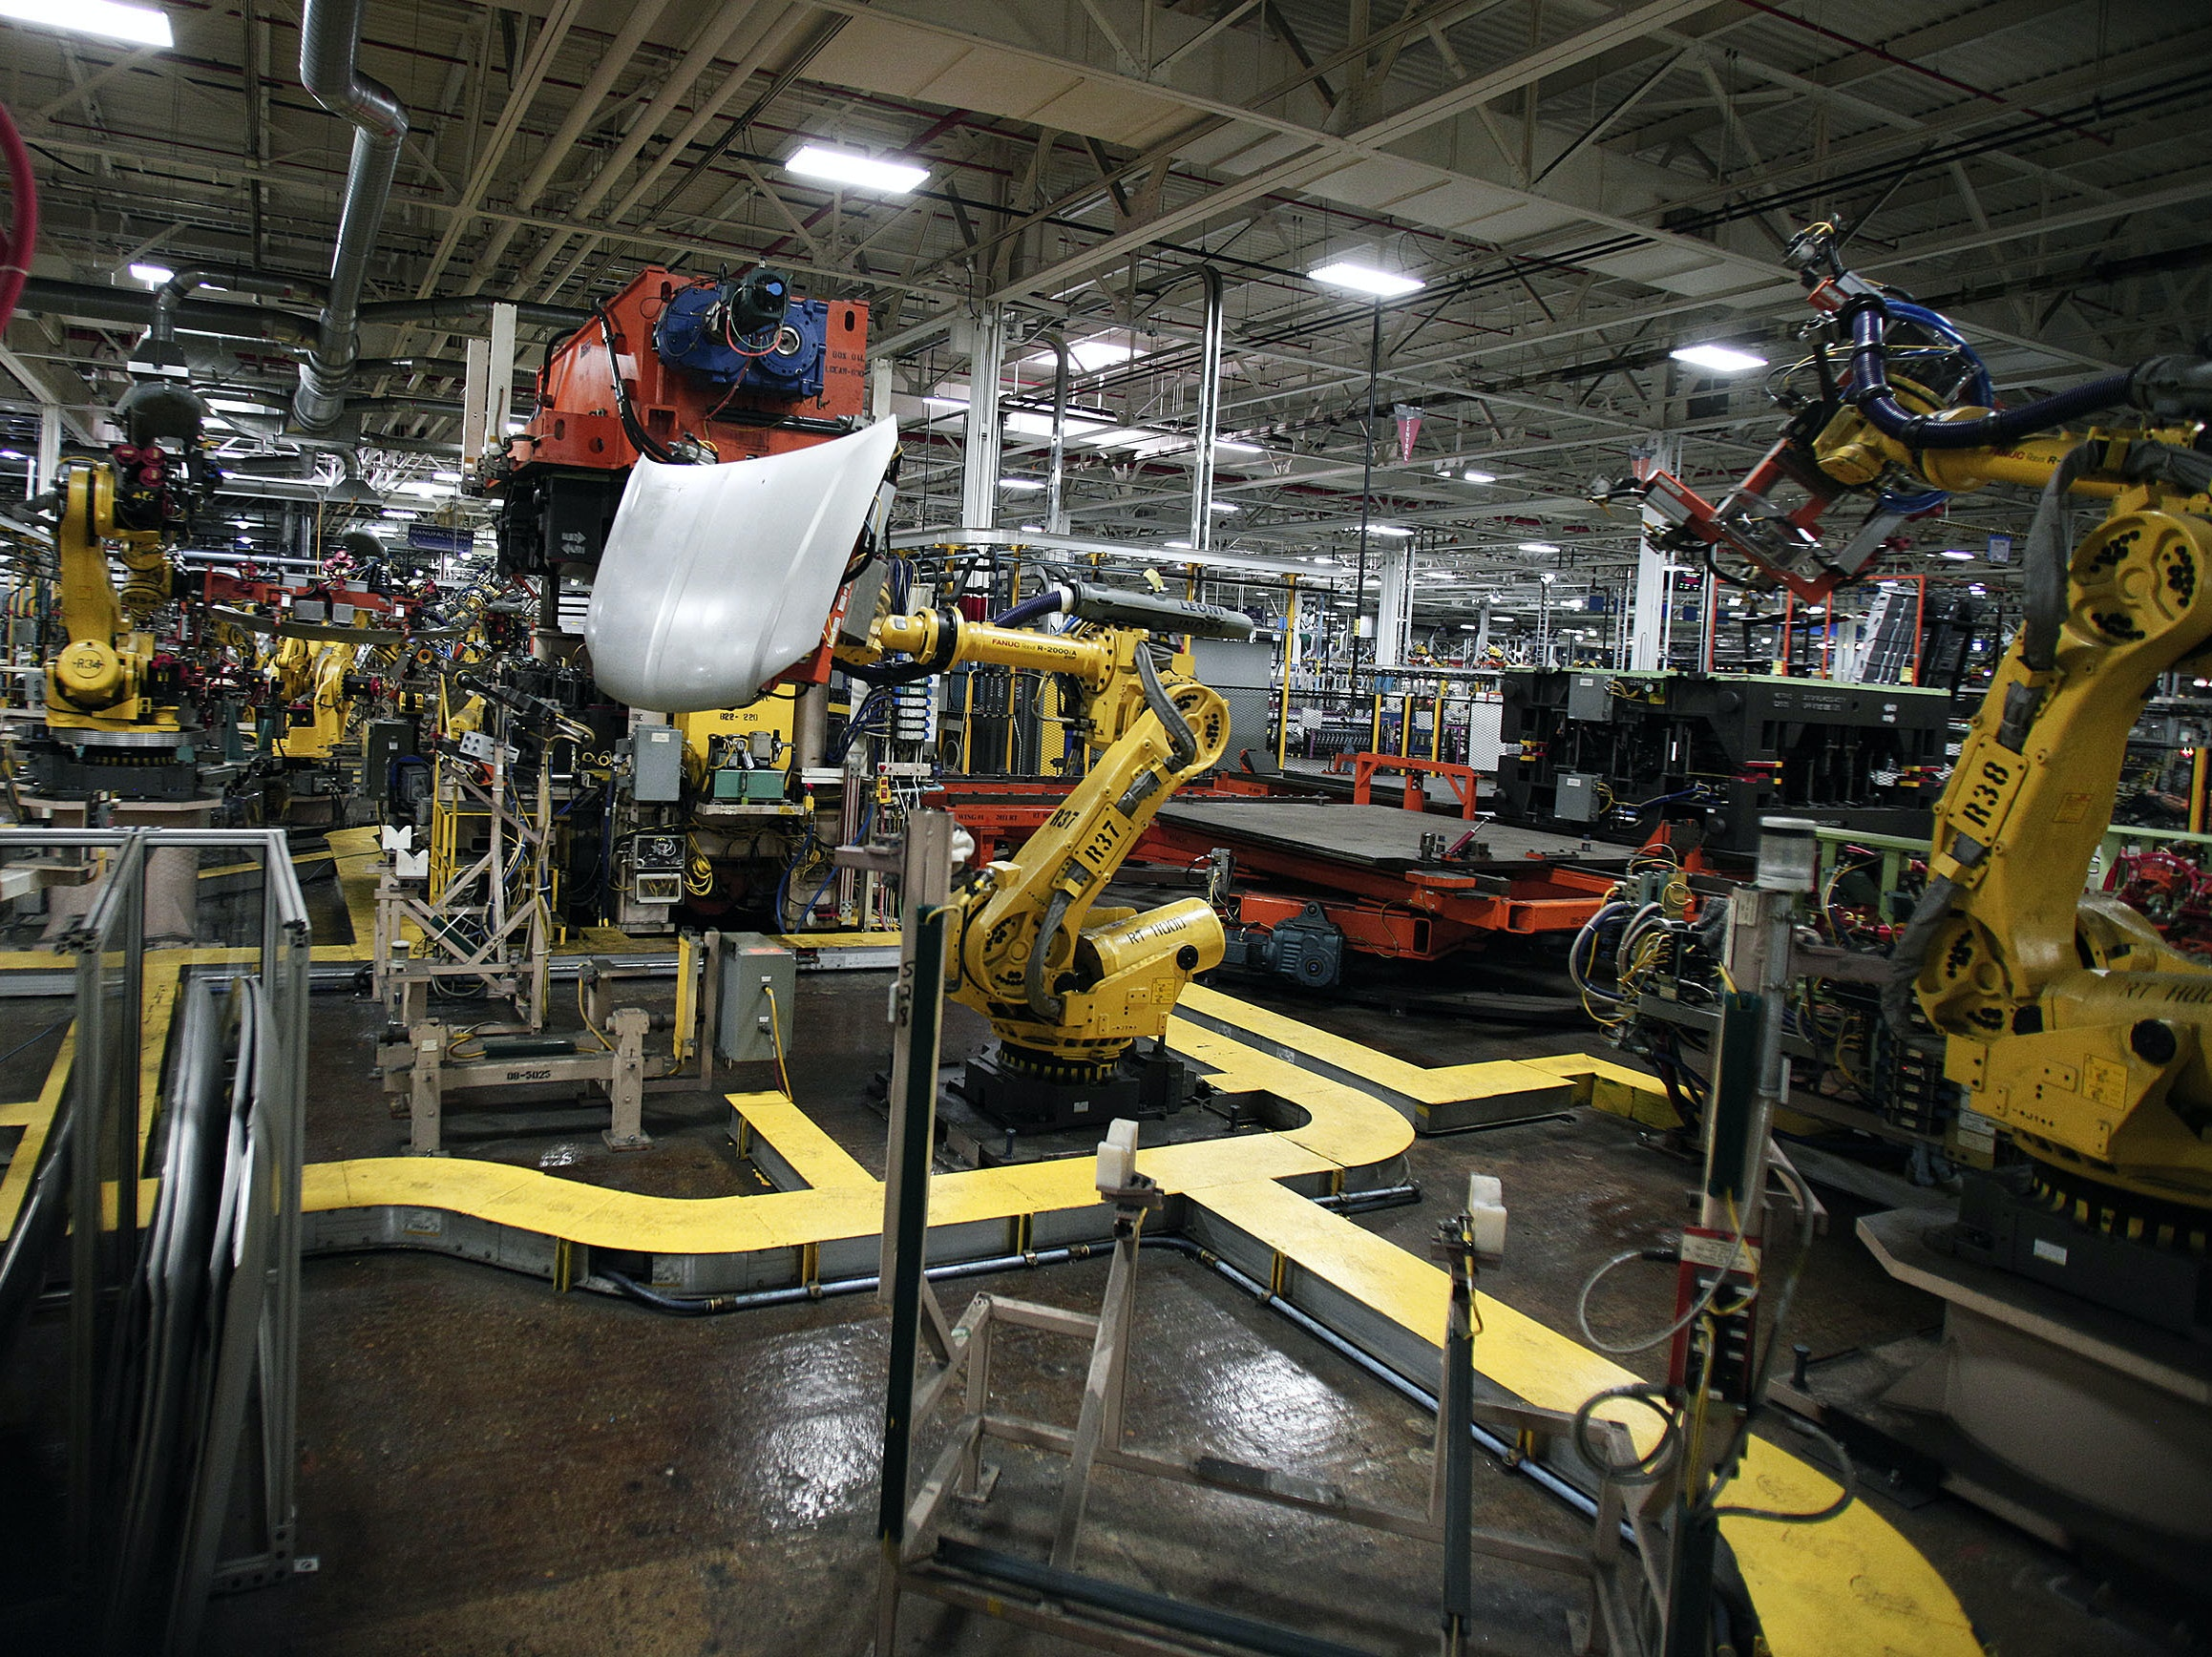 Robots handle parts for Fiat Chrysler Automobiles at the FCA Sterling Stamping Plant August in Sterling Heights, Michigan.